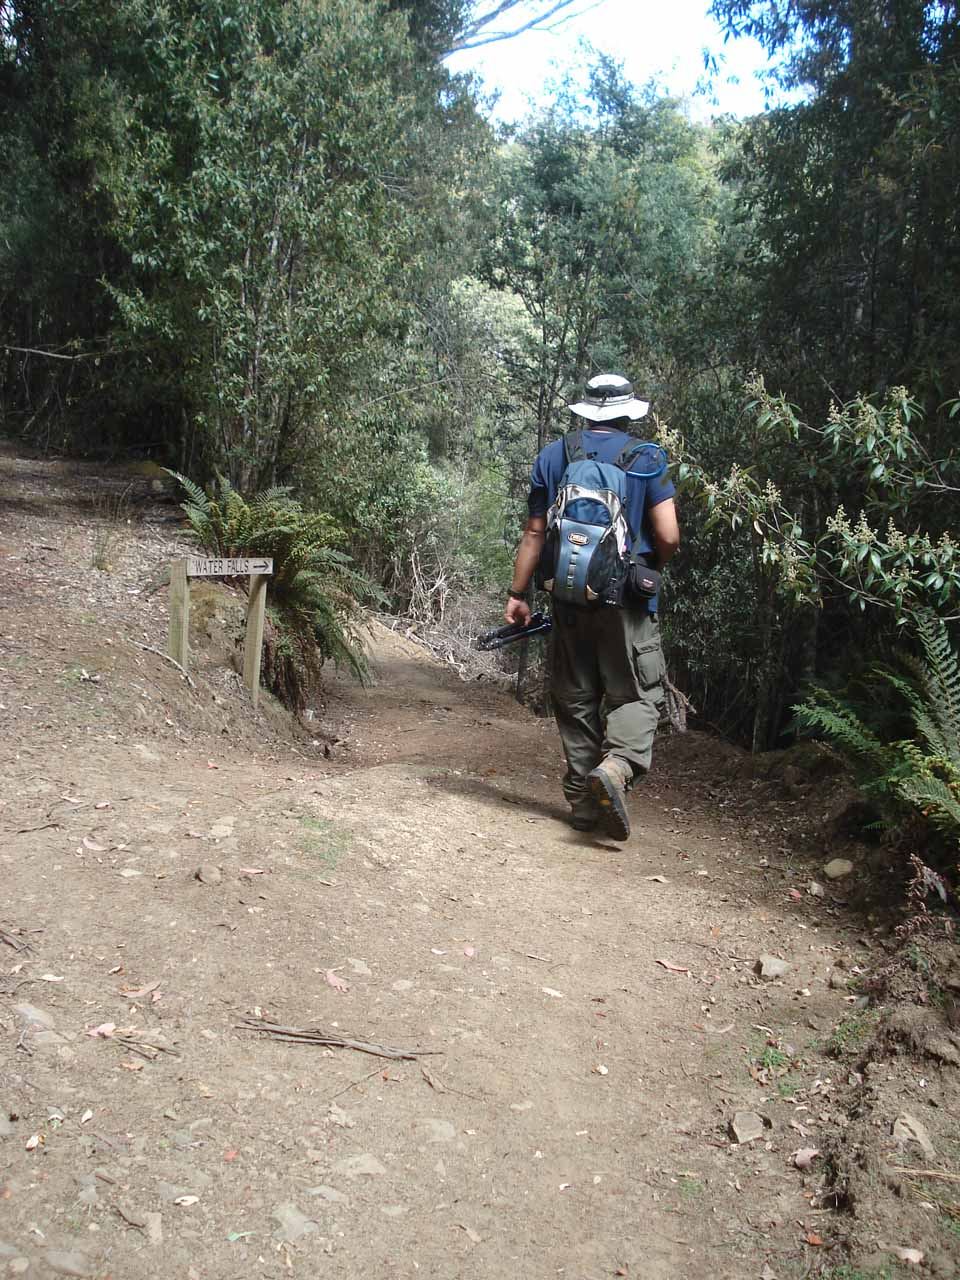 That's me following the shallower path descending from the 4wd path